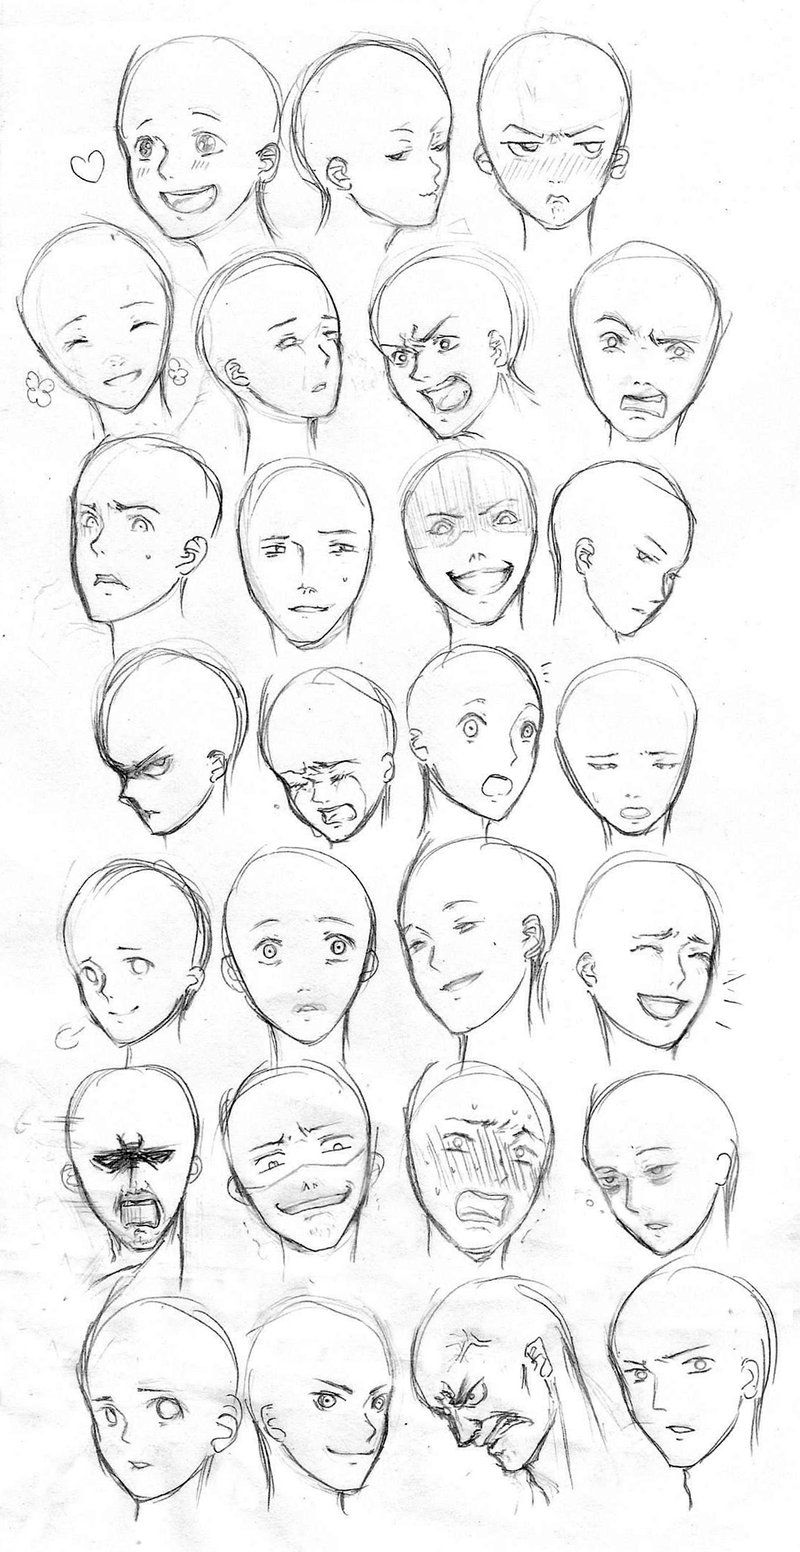 Facial Expressions I by YuuyuMori on DeviantArt